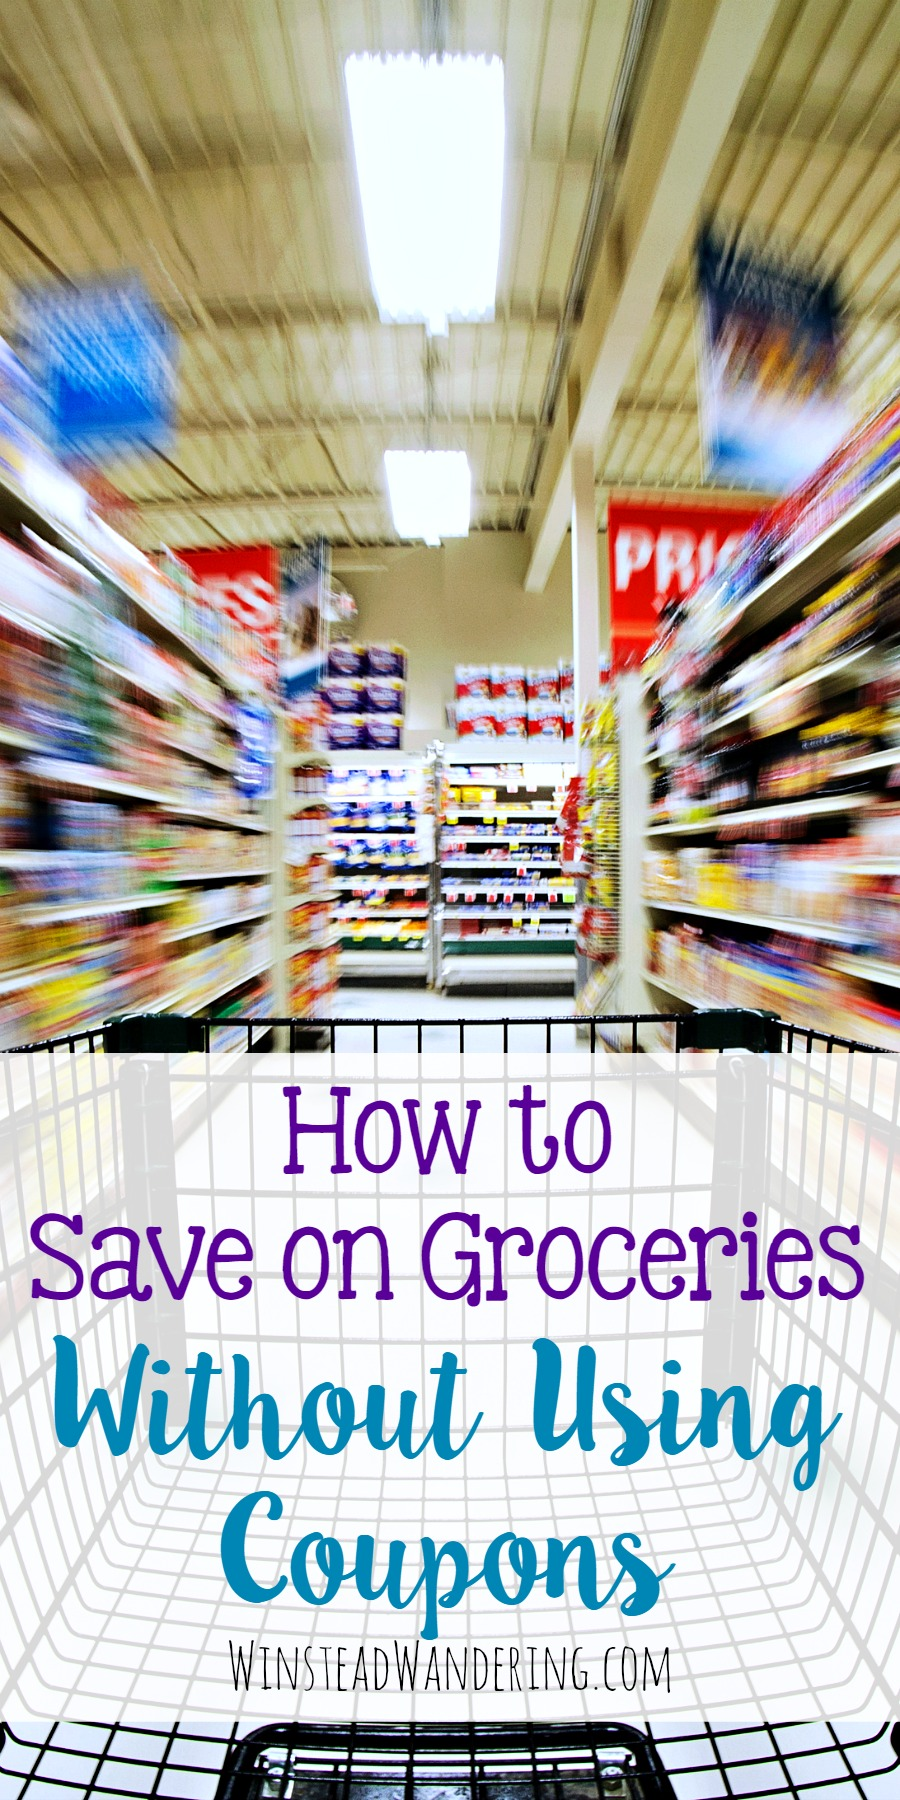 You don't have to spend hours scouring newspapers and the internet to save a few cents. Here's how to save on groceries without using coupons.